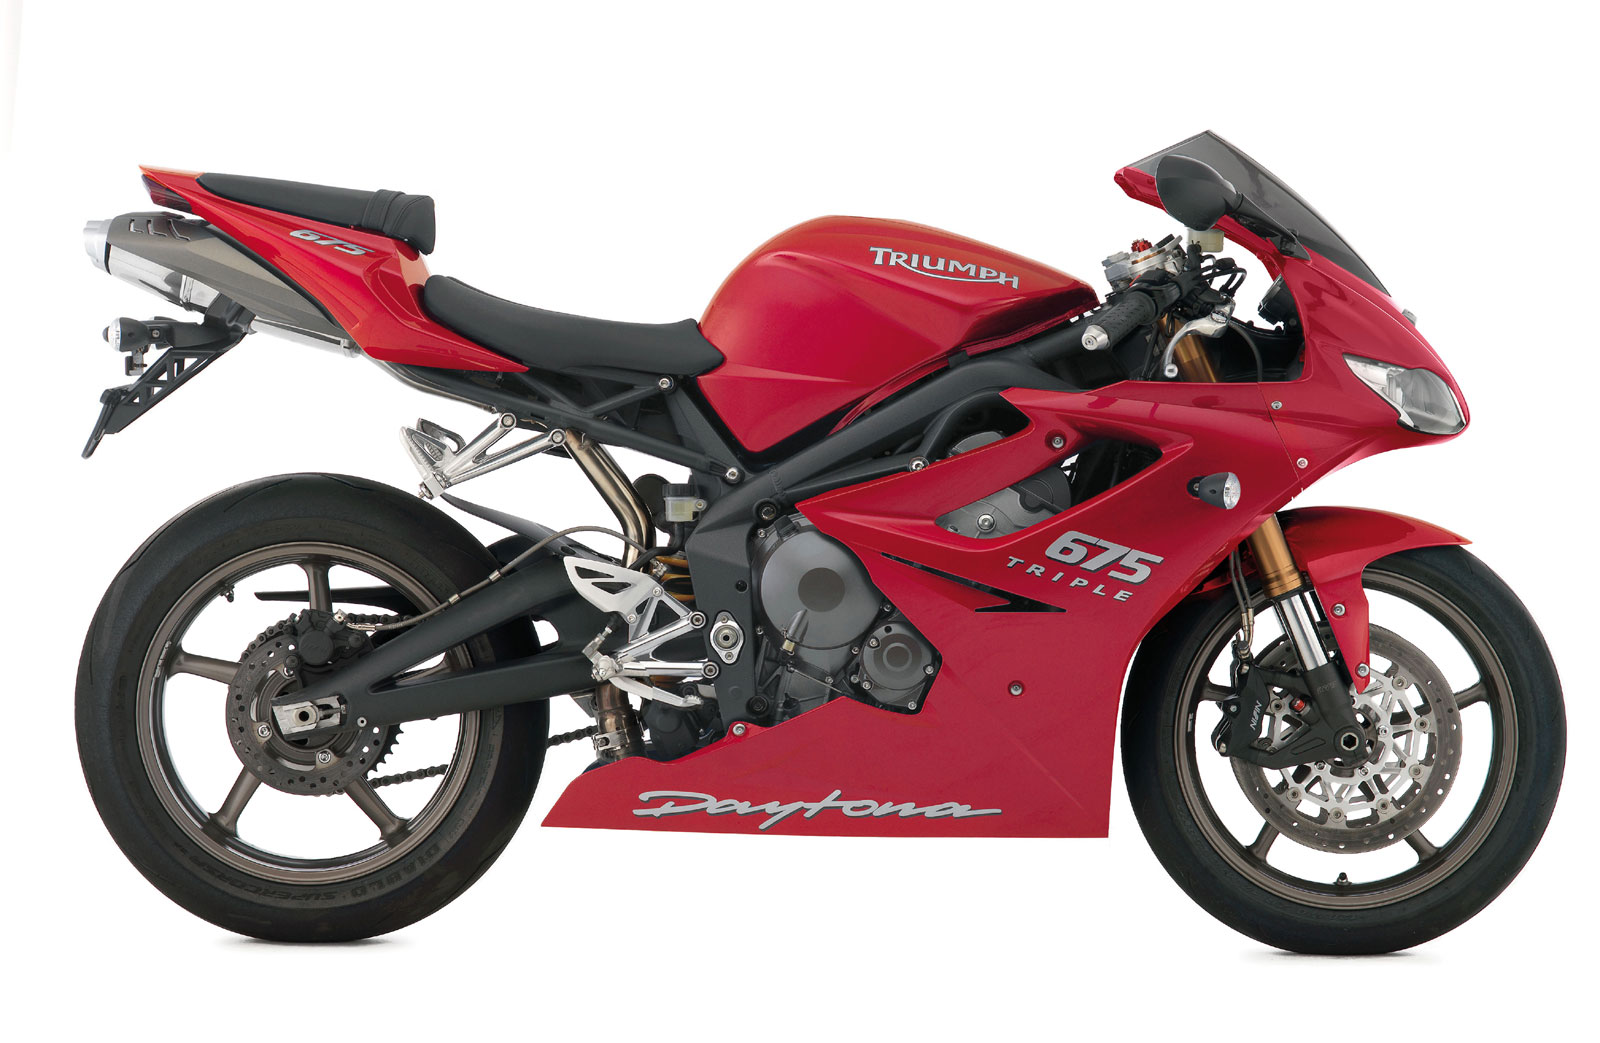 2009 Triumph Motorcycle Daytona 675 Photo Gallery